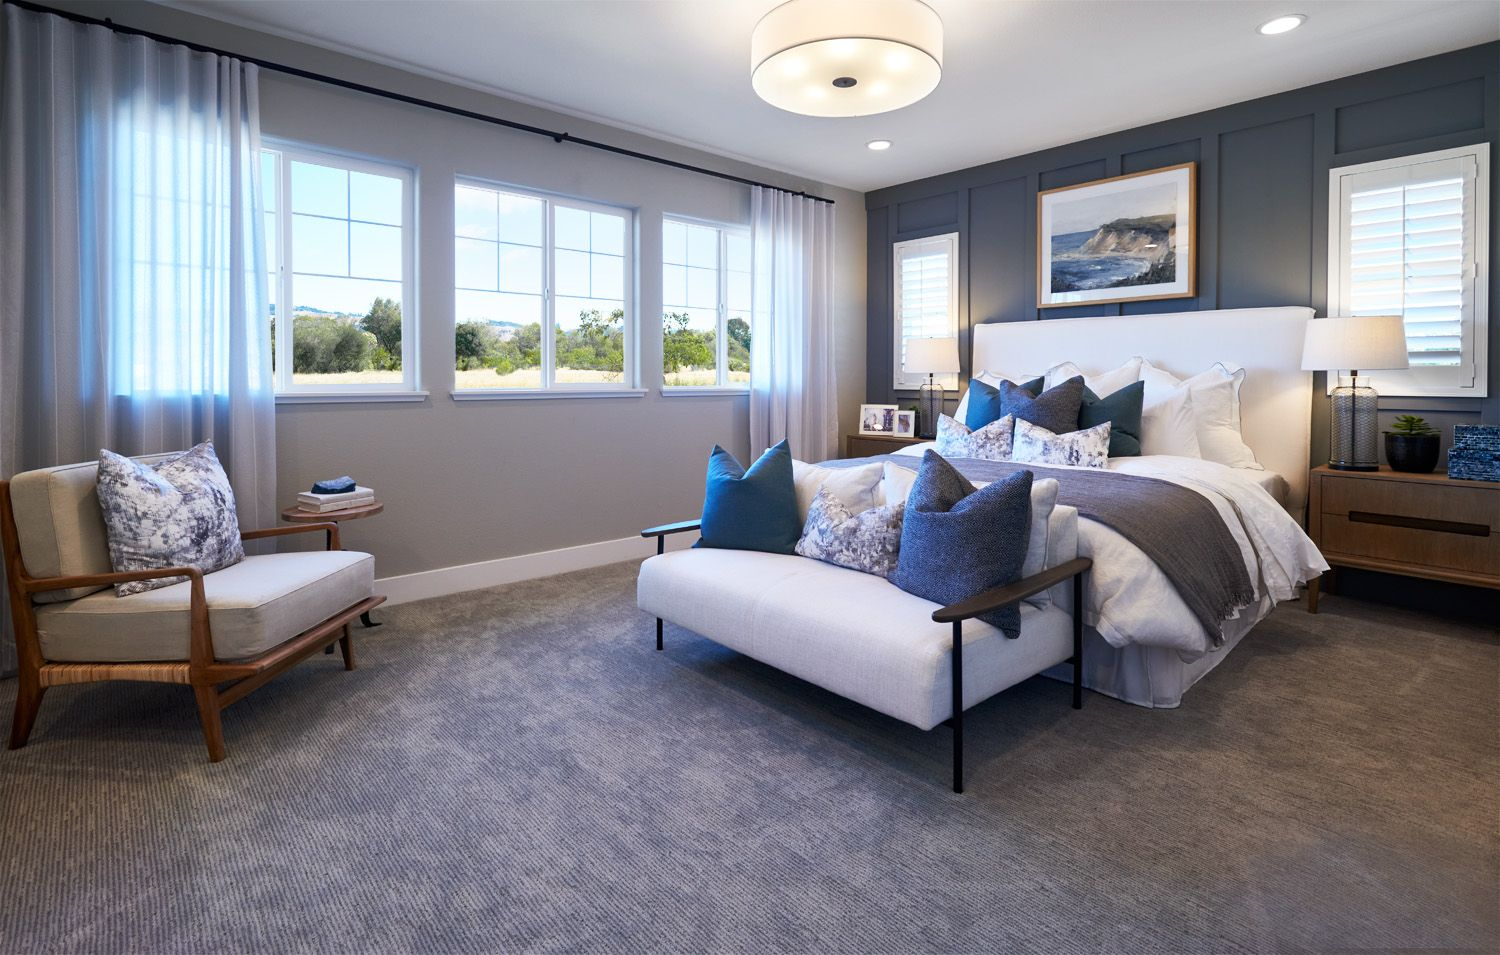 Bedroom featured in the Residence 3 By Signature Homes CA in Santa Rosa, CA